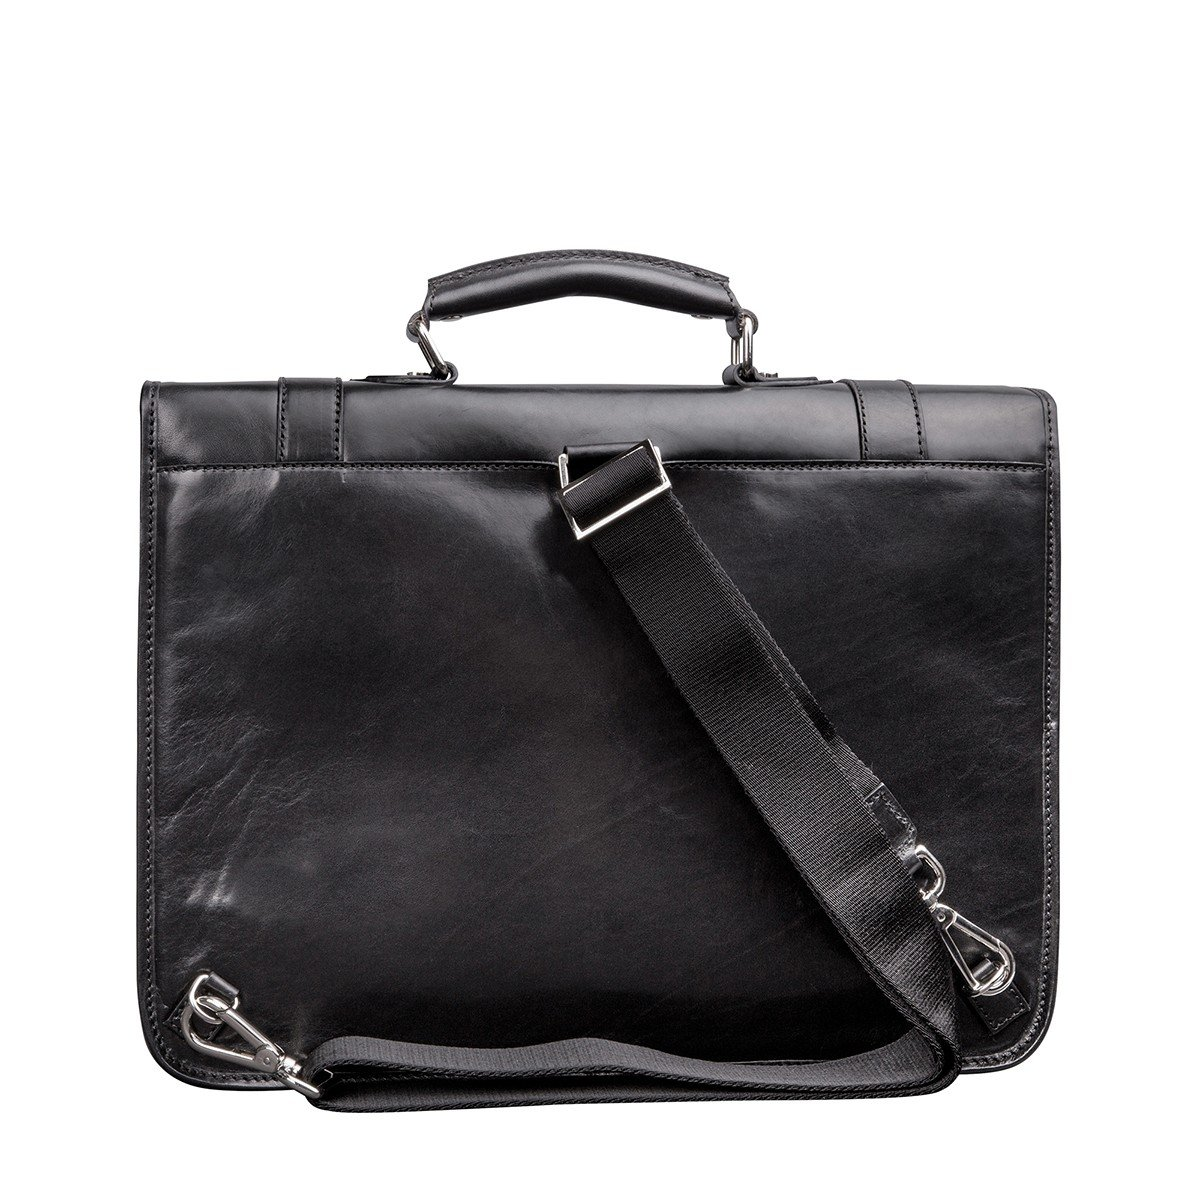 Maxwell Scott Mens Black Leather Backpack Briefcase (Micheli) by Maxwell Scott Bags (Image #4)